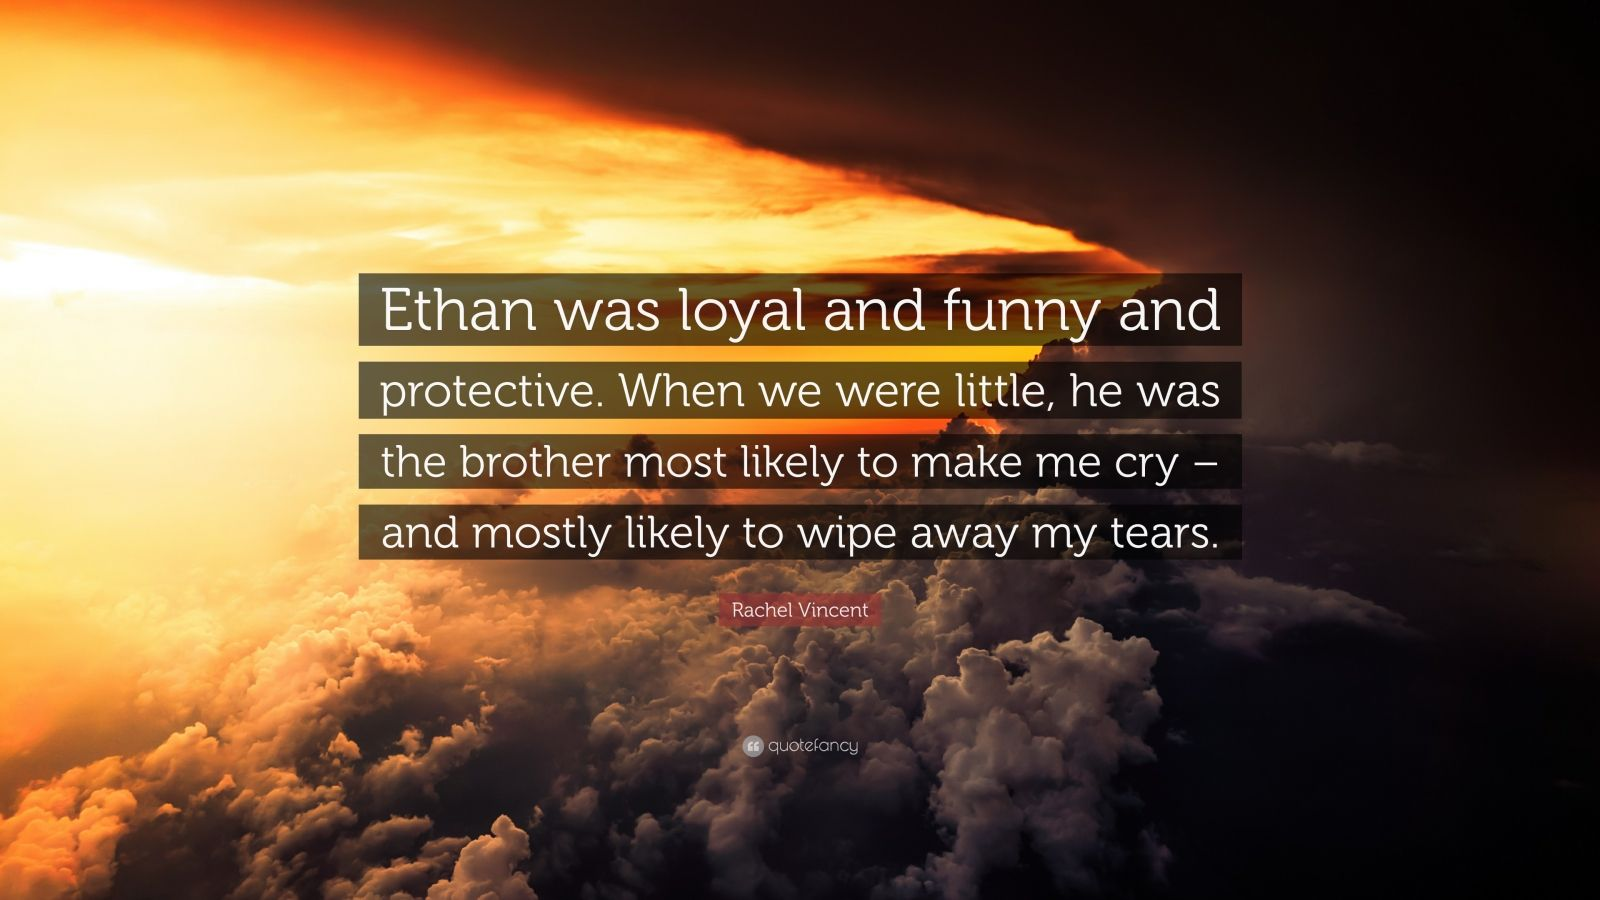 """Rachel Vincent Quote: """"Ethan was loyal and funny and protective. When we were little, he was the brother most likely to make me cry – and mostly likely to wipe away my tears."""""""